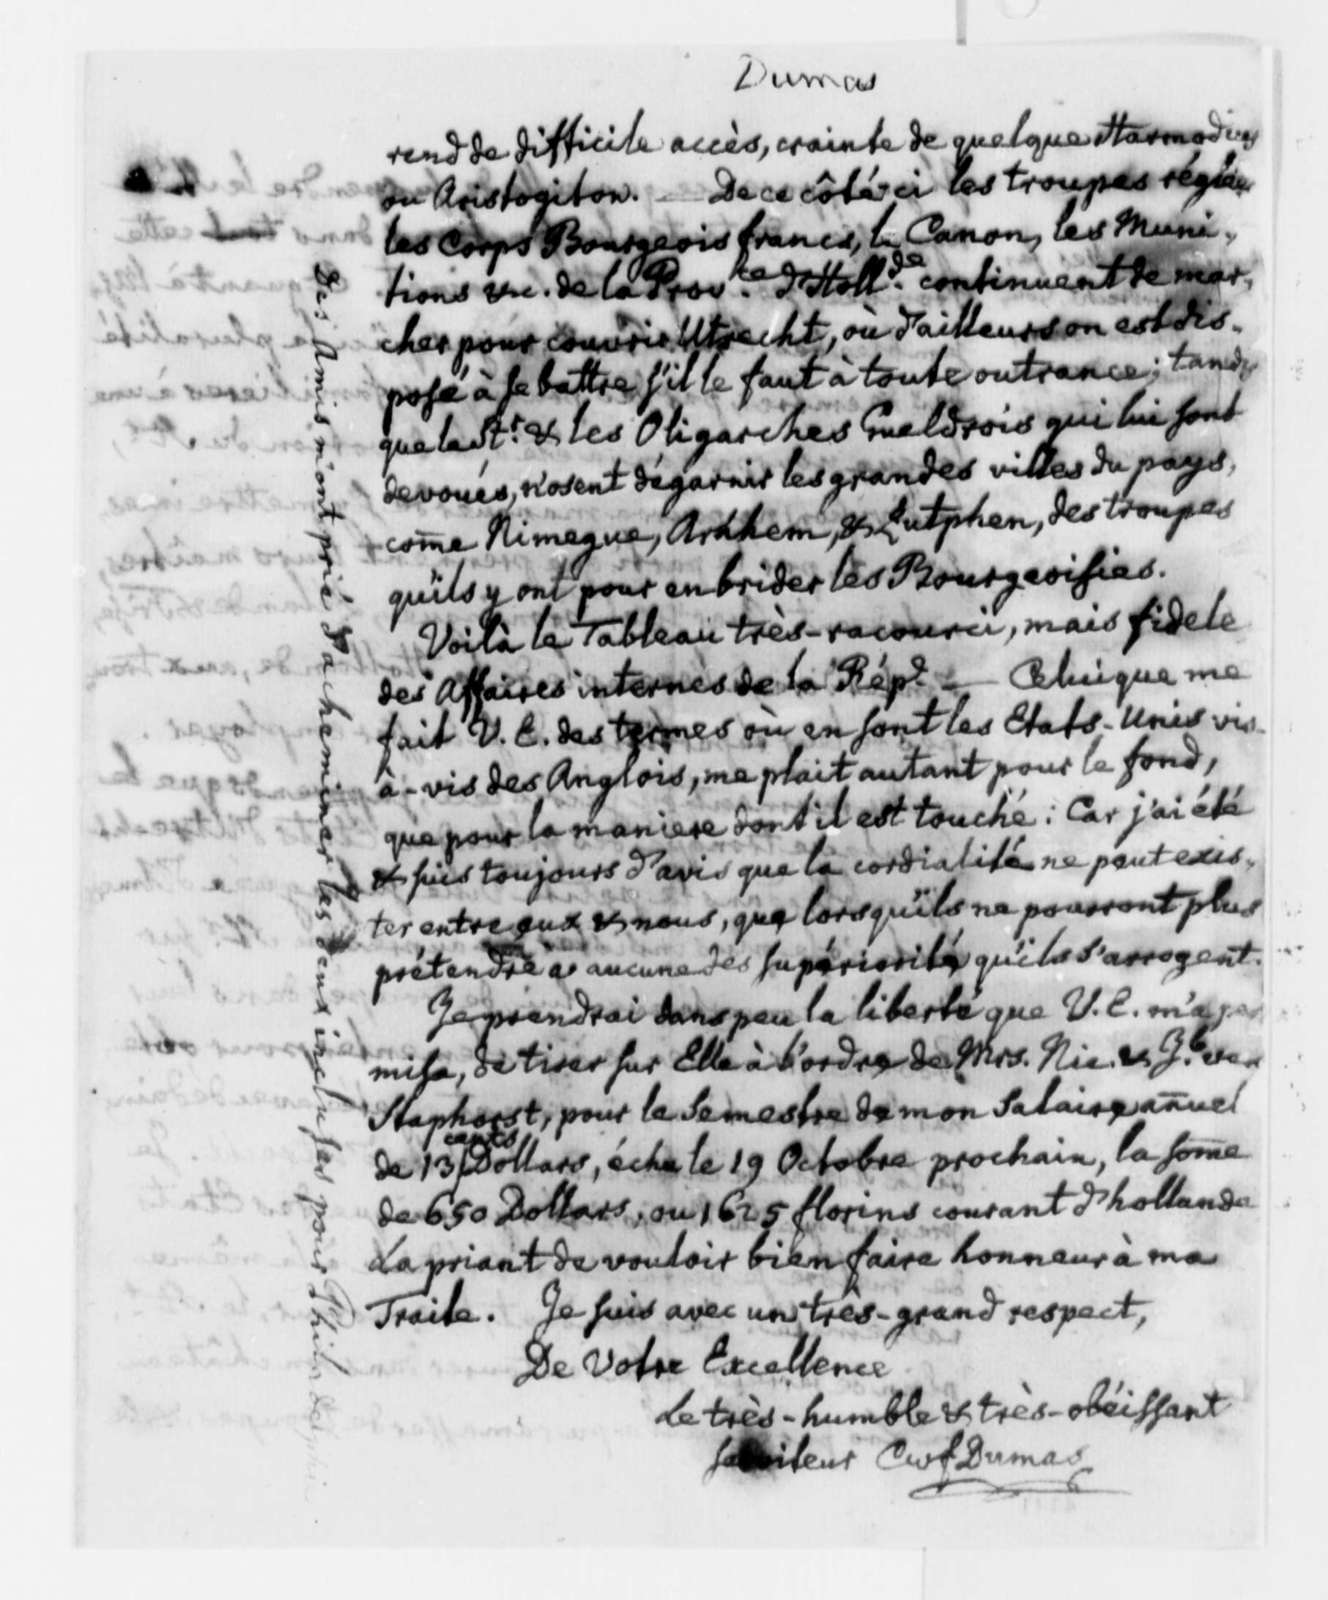 Charles William Frederic Dumas to Thomas Jefferson, September 12, 1786, in French